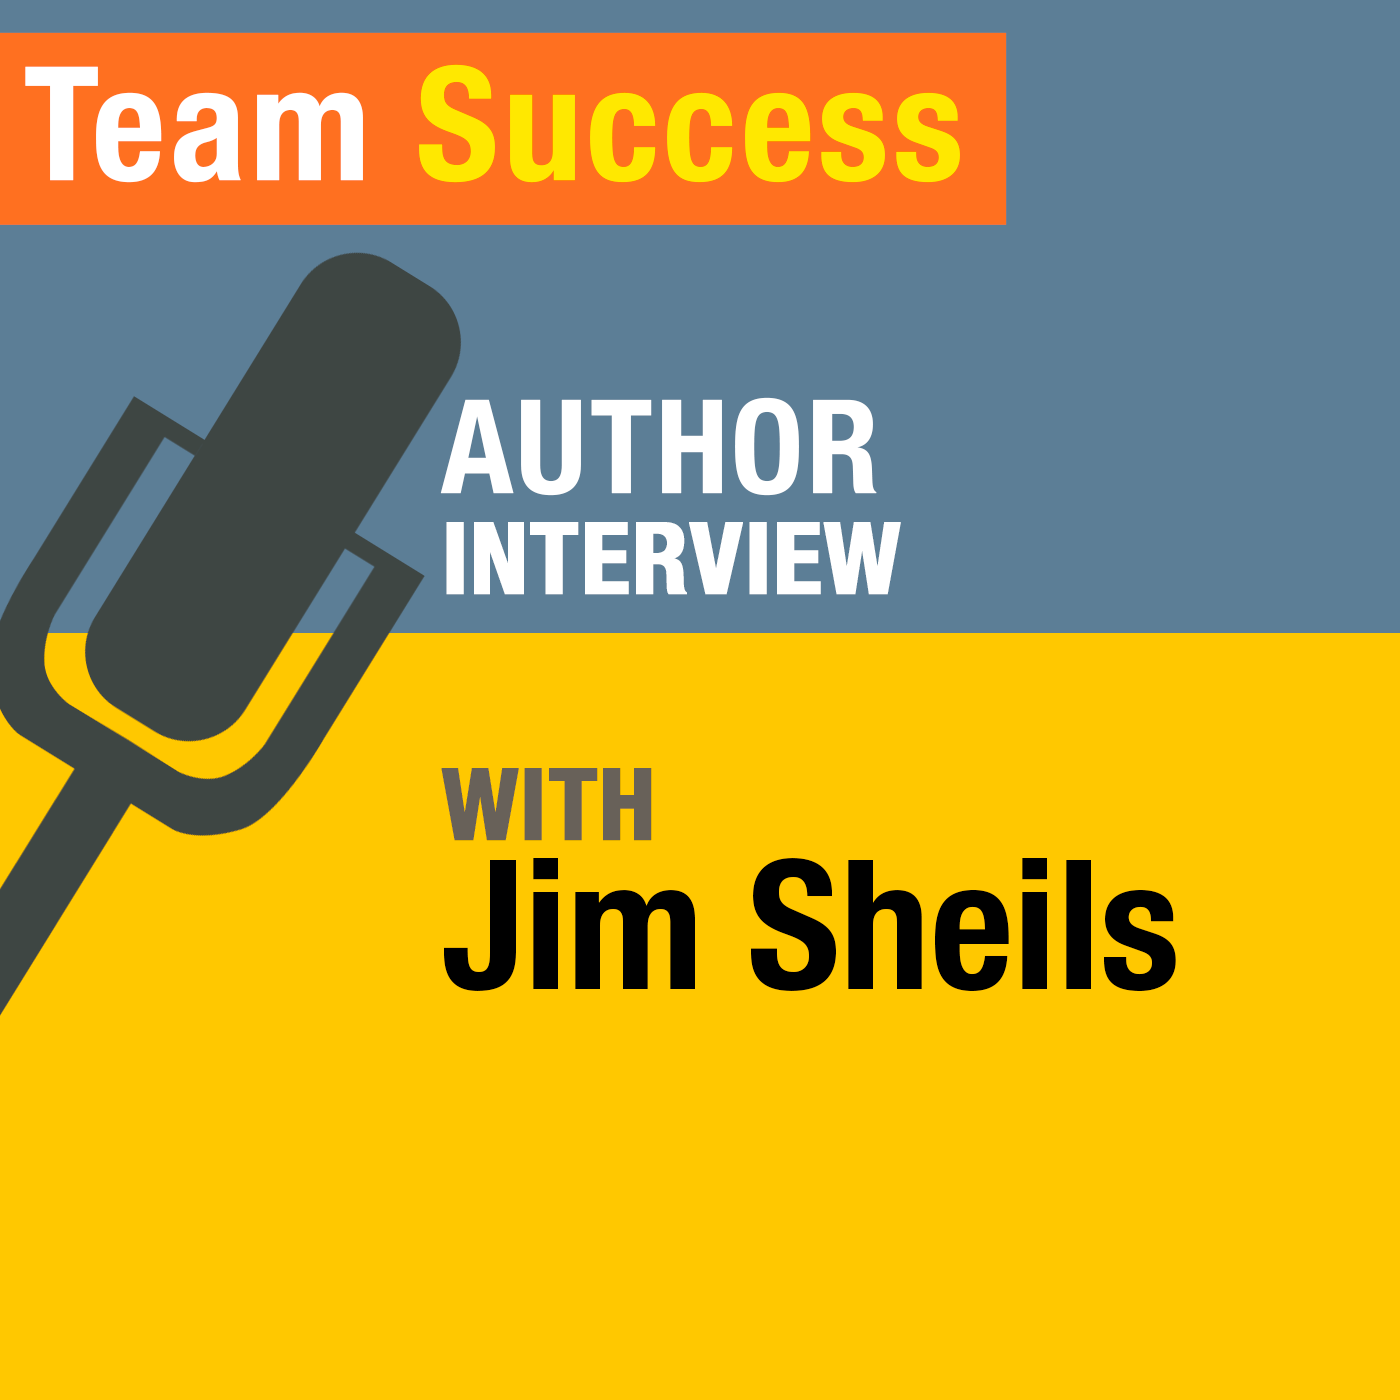 An Interview With Jim Sheils - Team Success Podcast